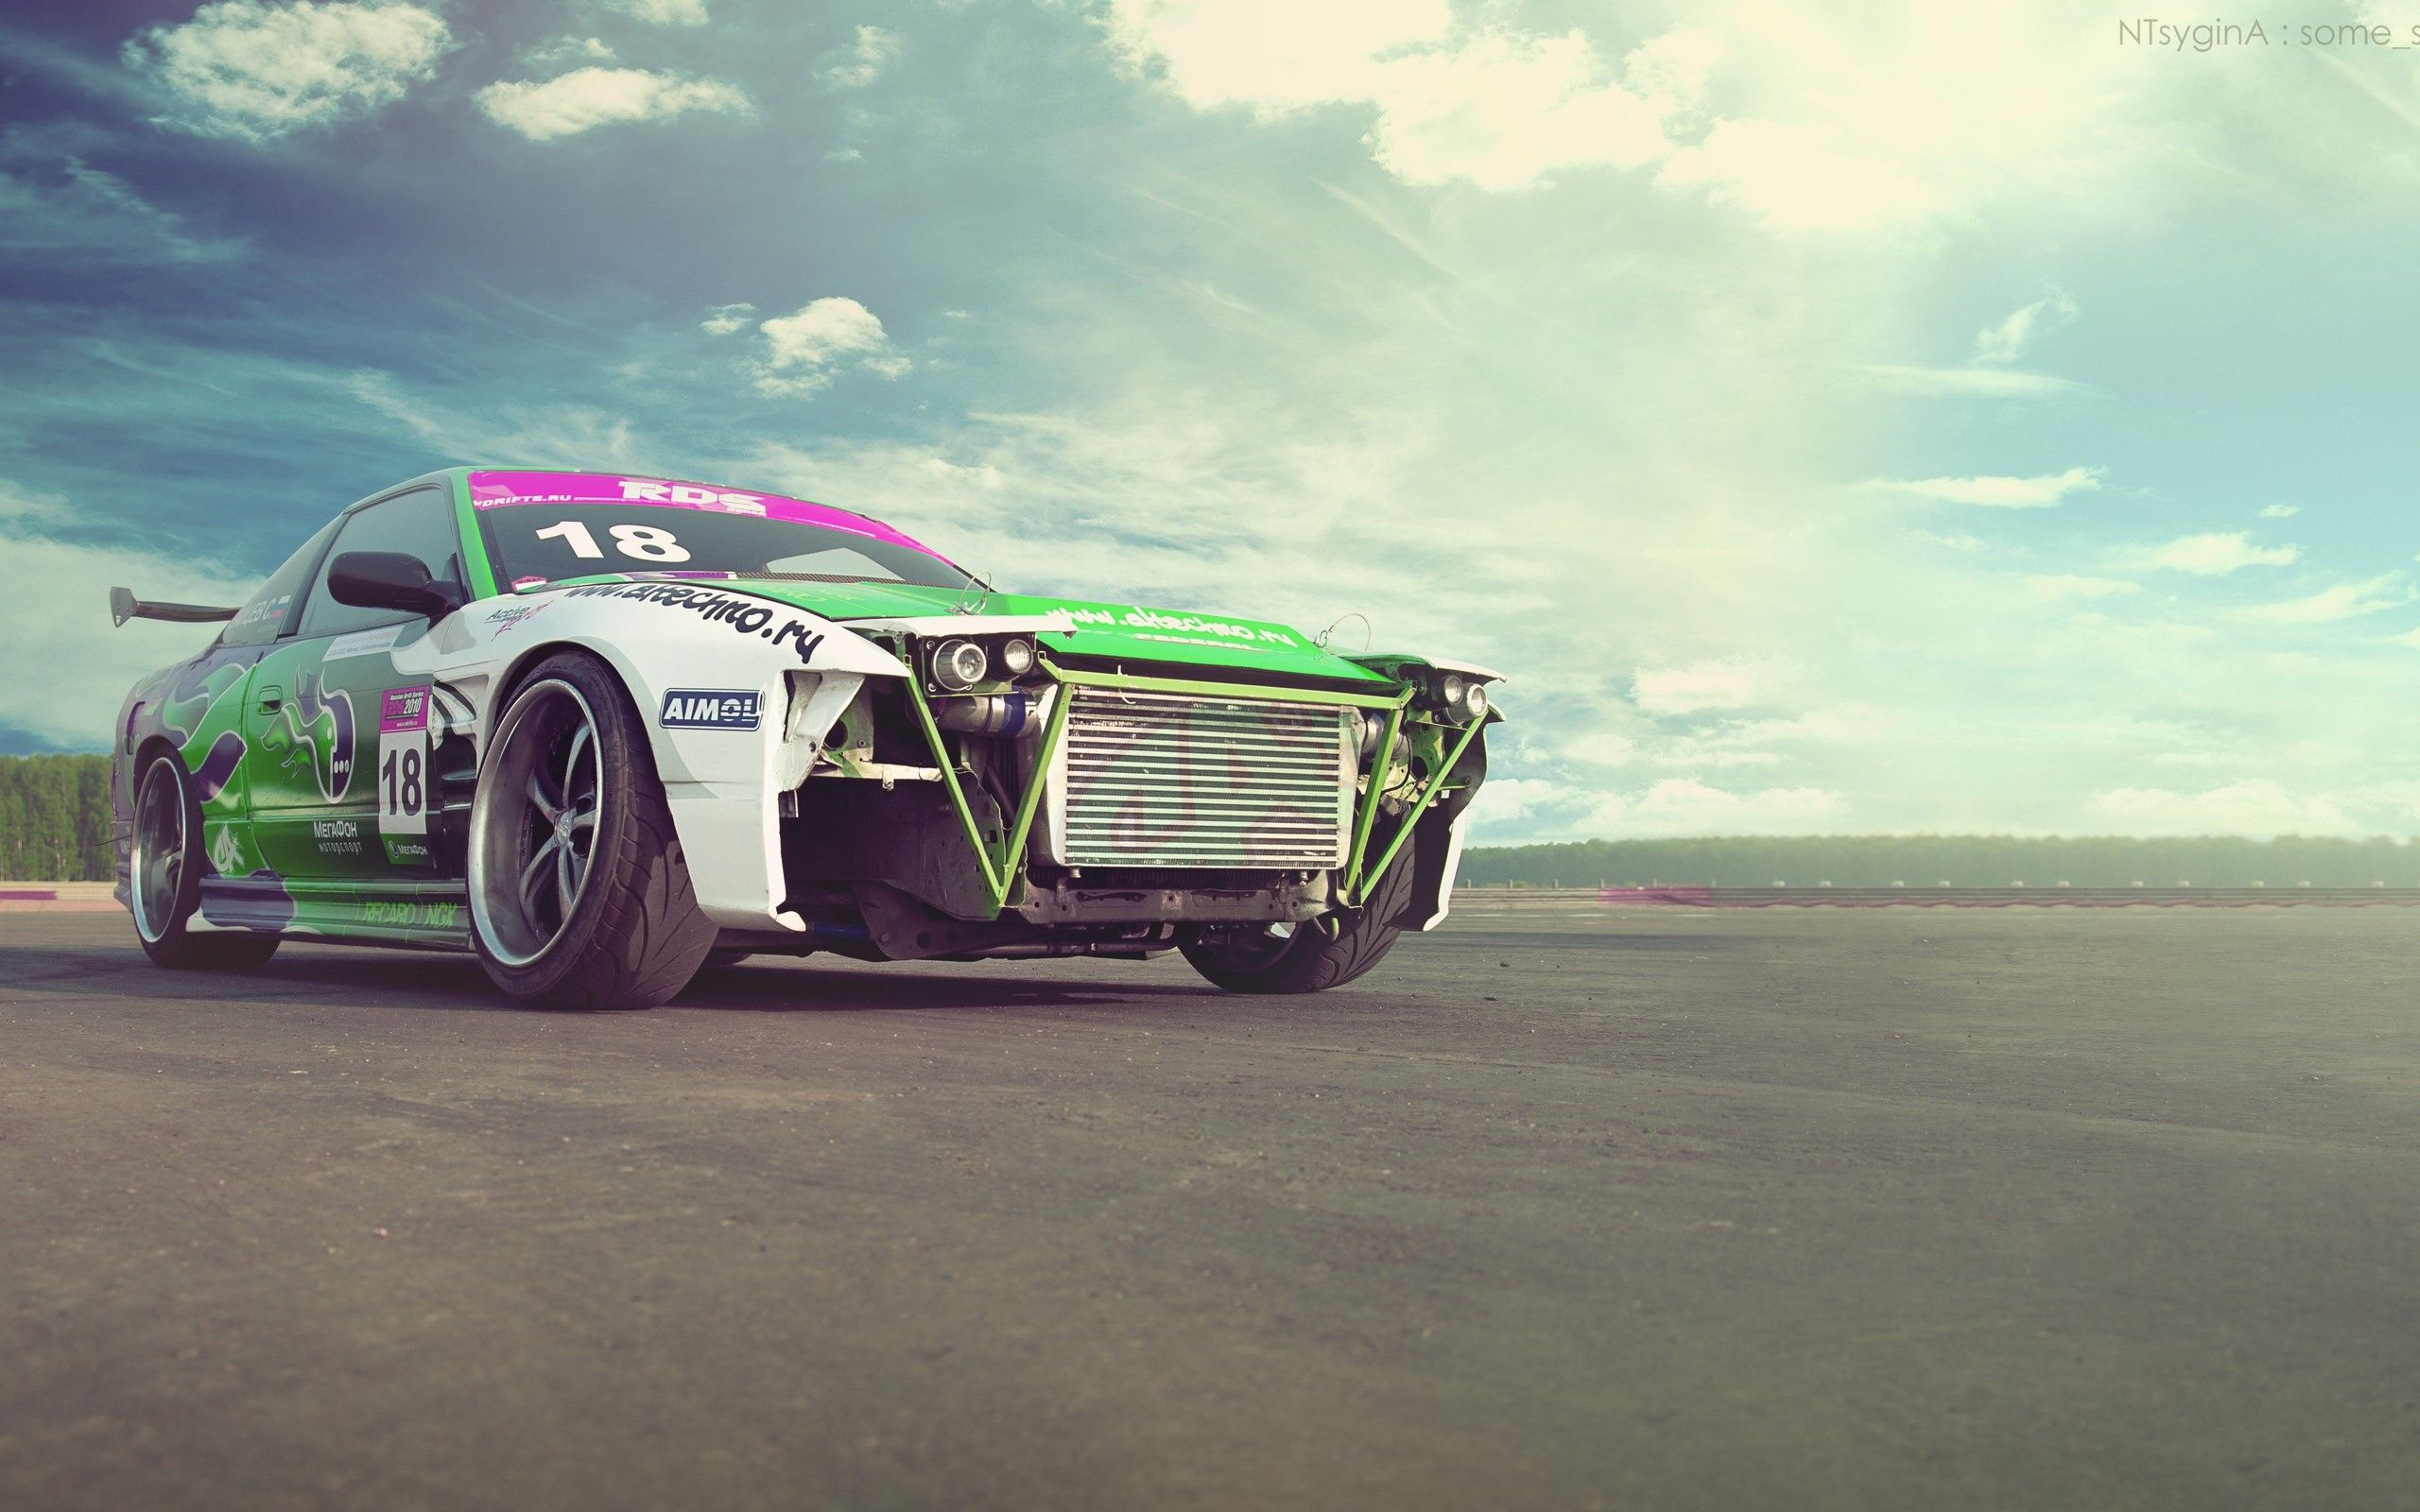 2560x1600 Download the Let The Drift Breathe Wallpaper, Let The Drift Breathe ...